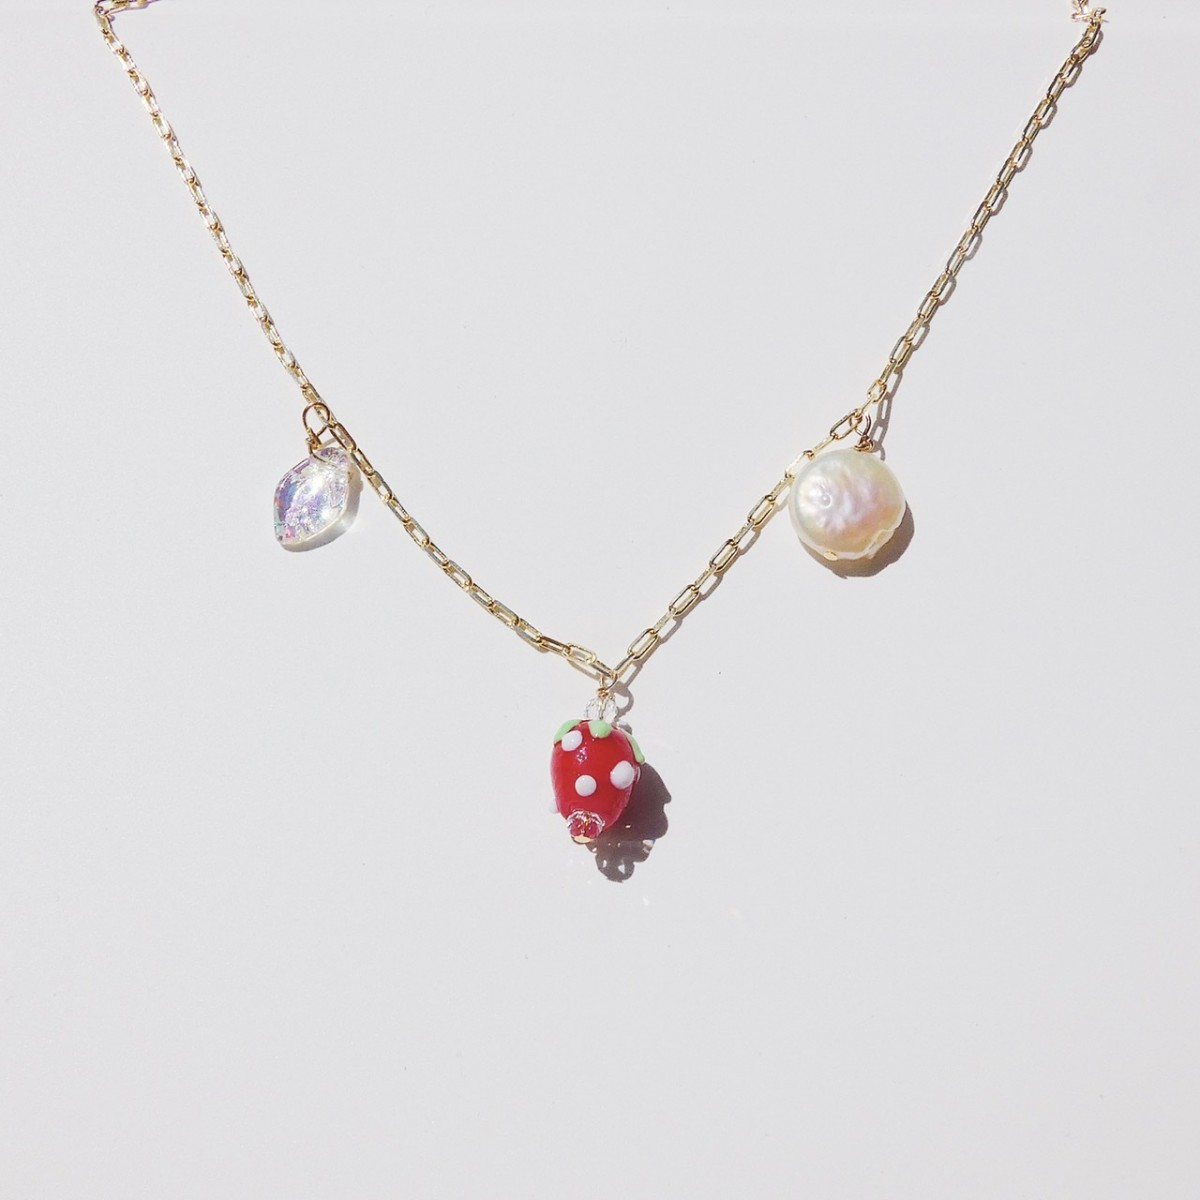 Valerie Chic - HAPPY STRAWBERRY Kette - 18 Karat vergoldet